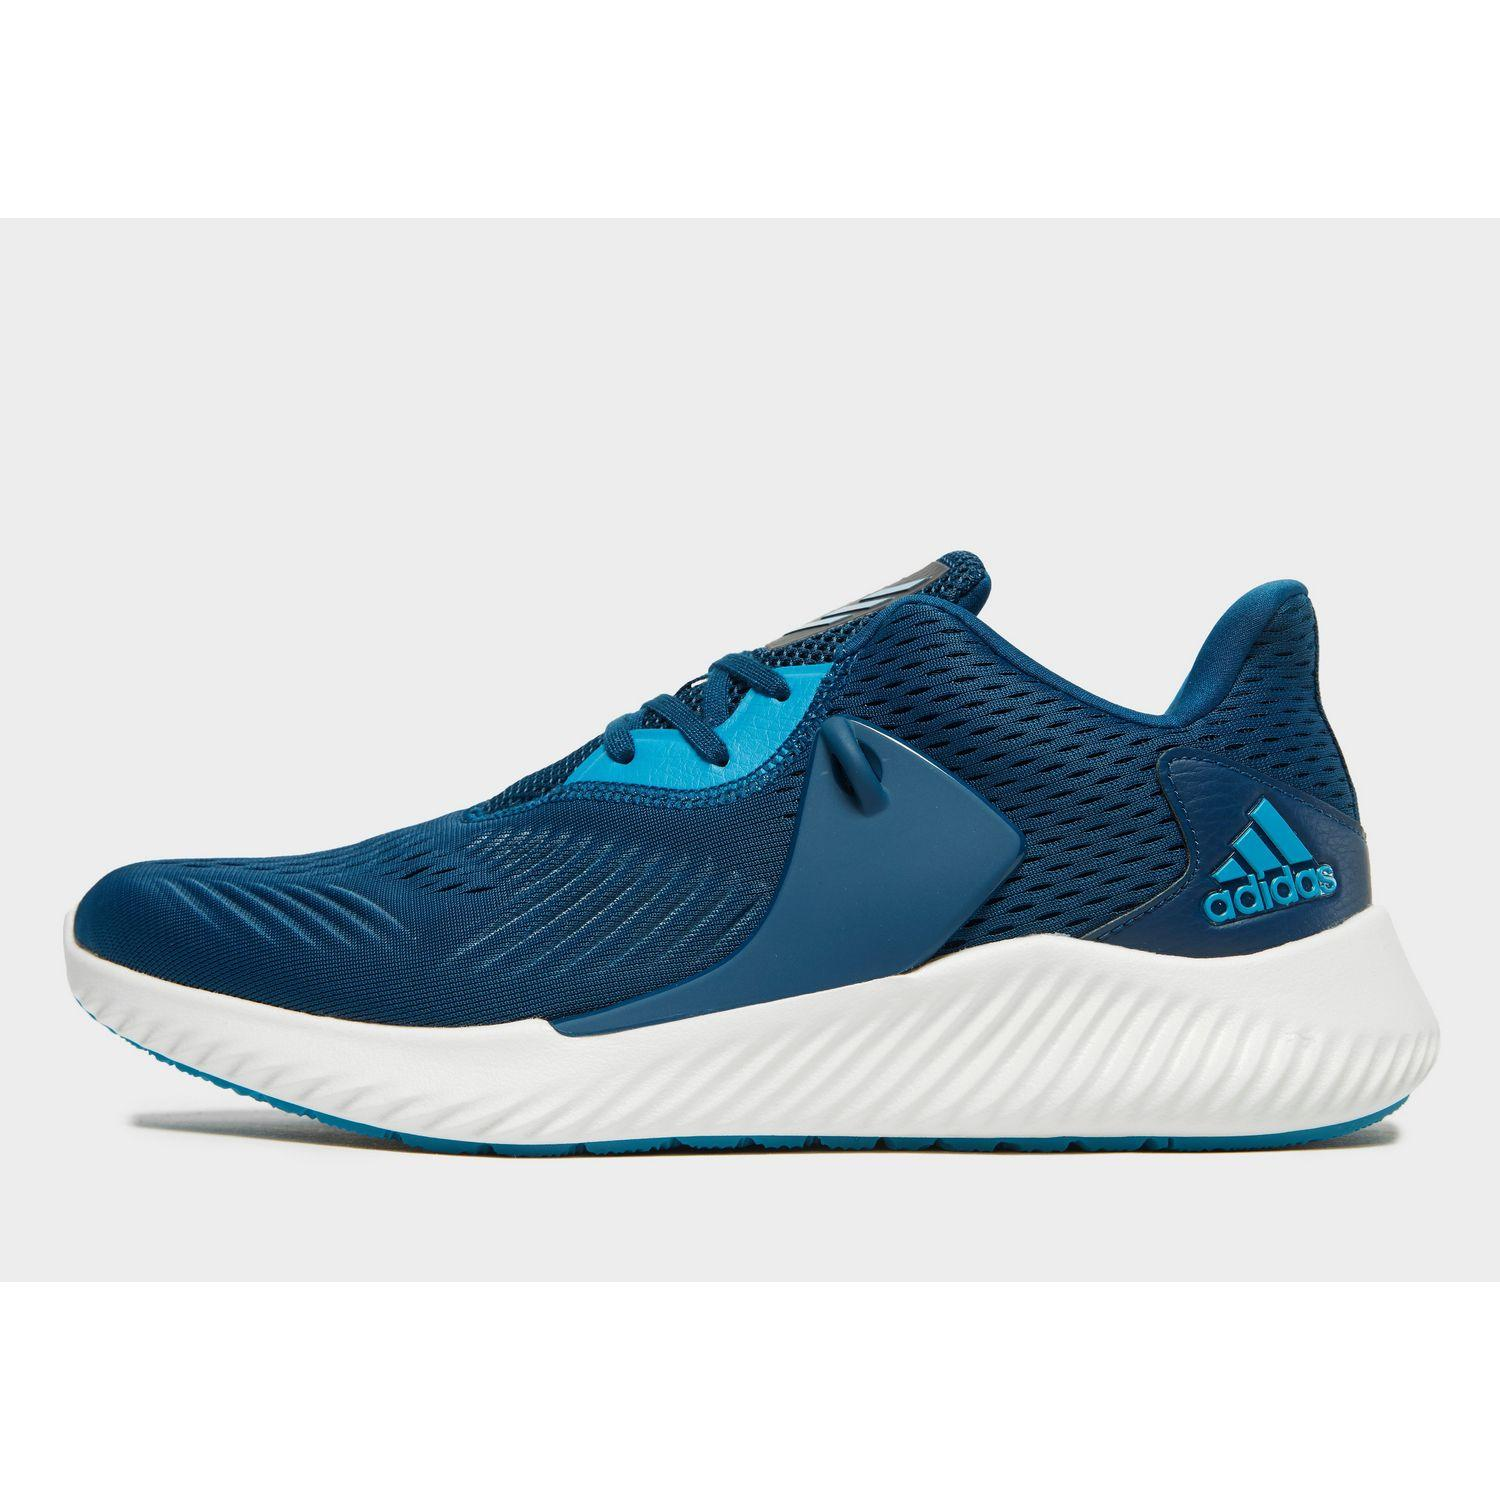 adidas Alpha Bounce Rc in Blue for Men - Lyst 706a597a7